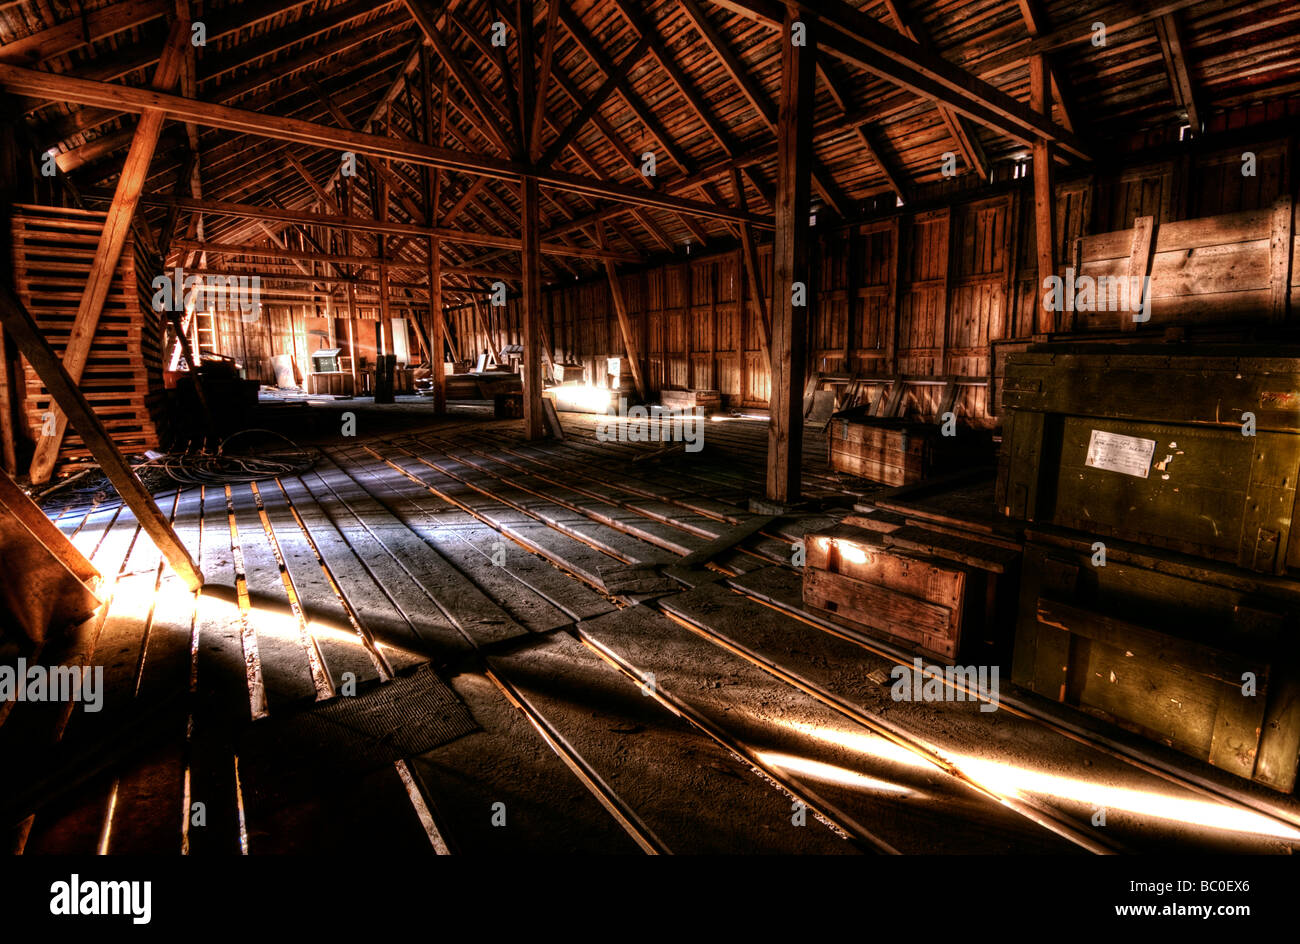 Wooden warehouse with wooden crates Stock Photo